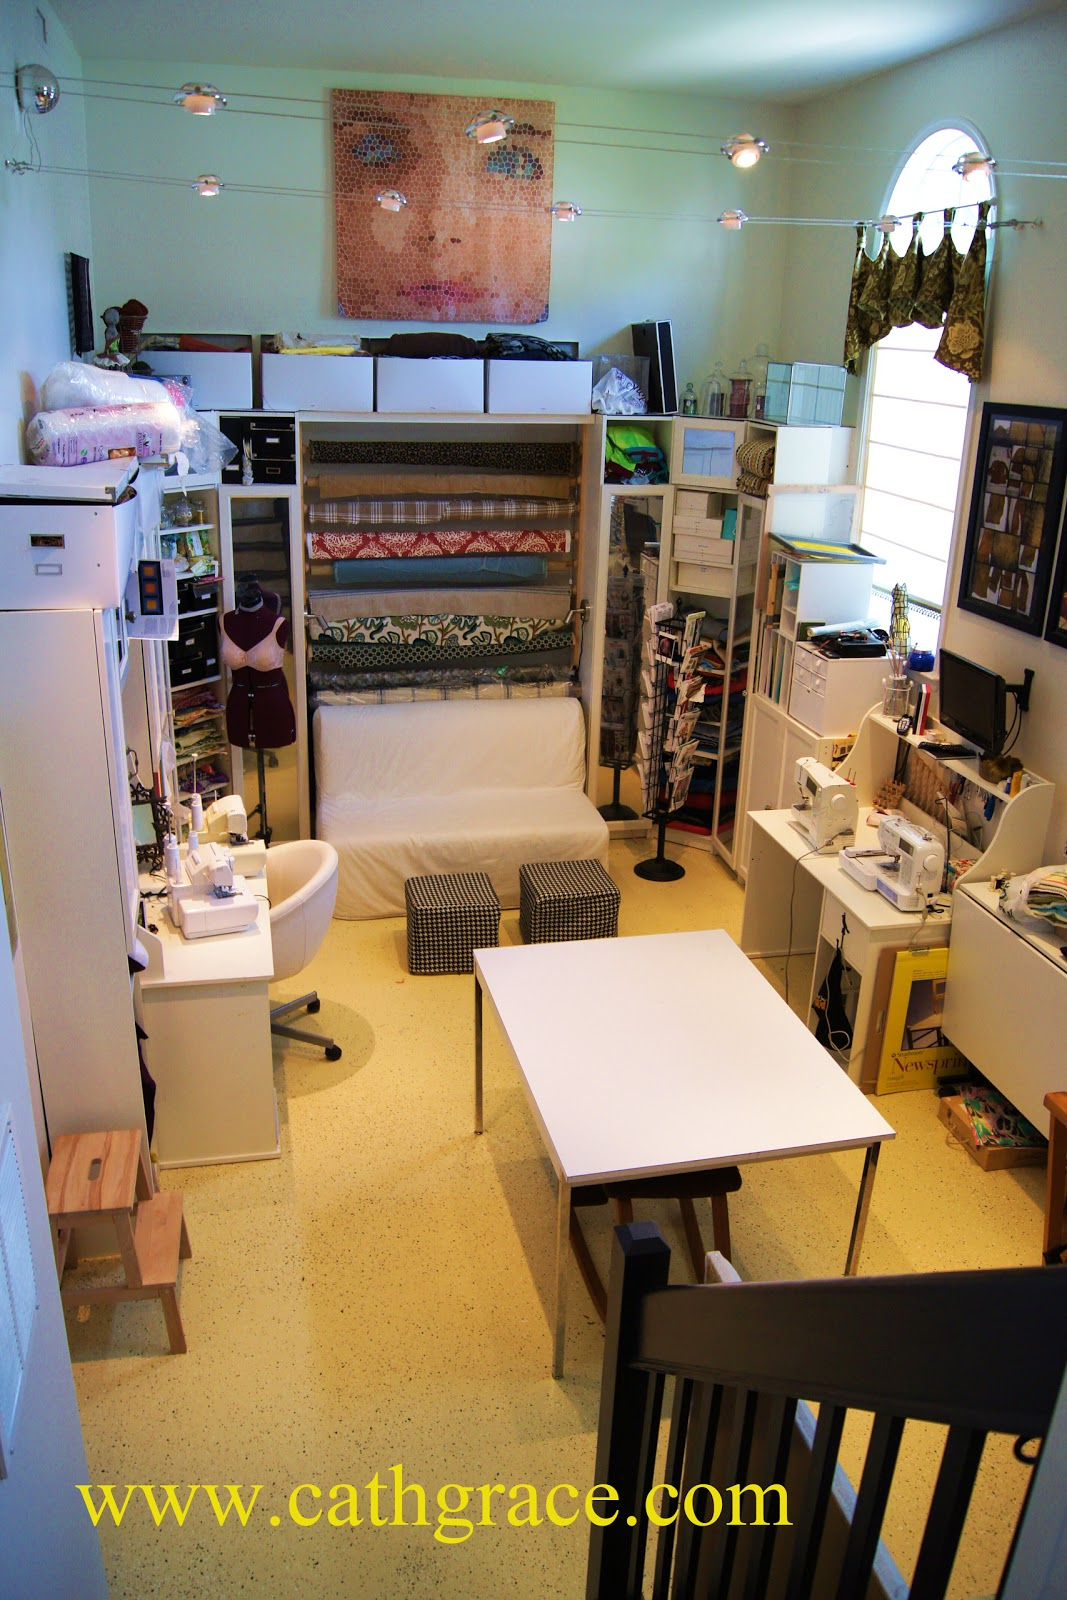 My Sewing Room Craft Studio Cathgrace